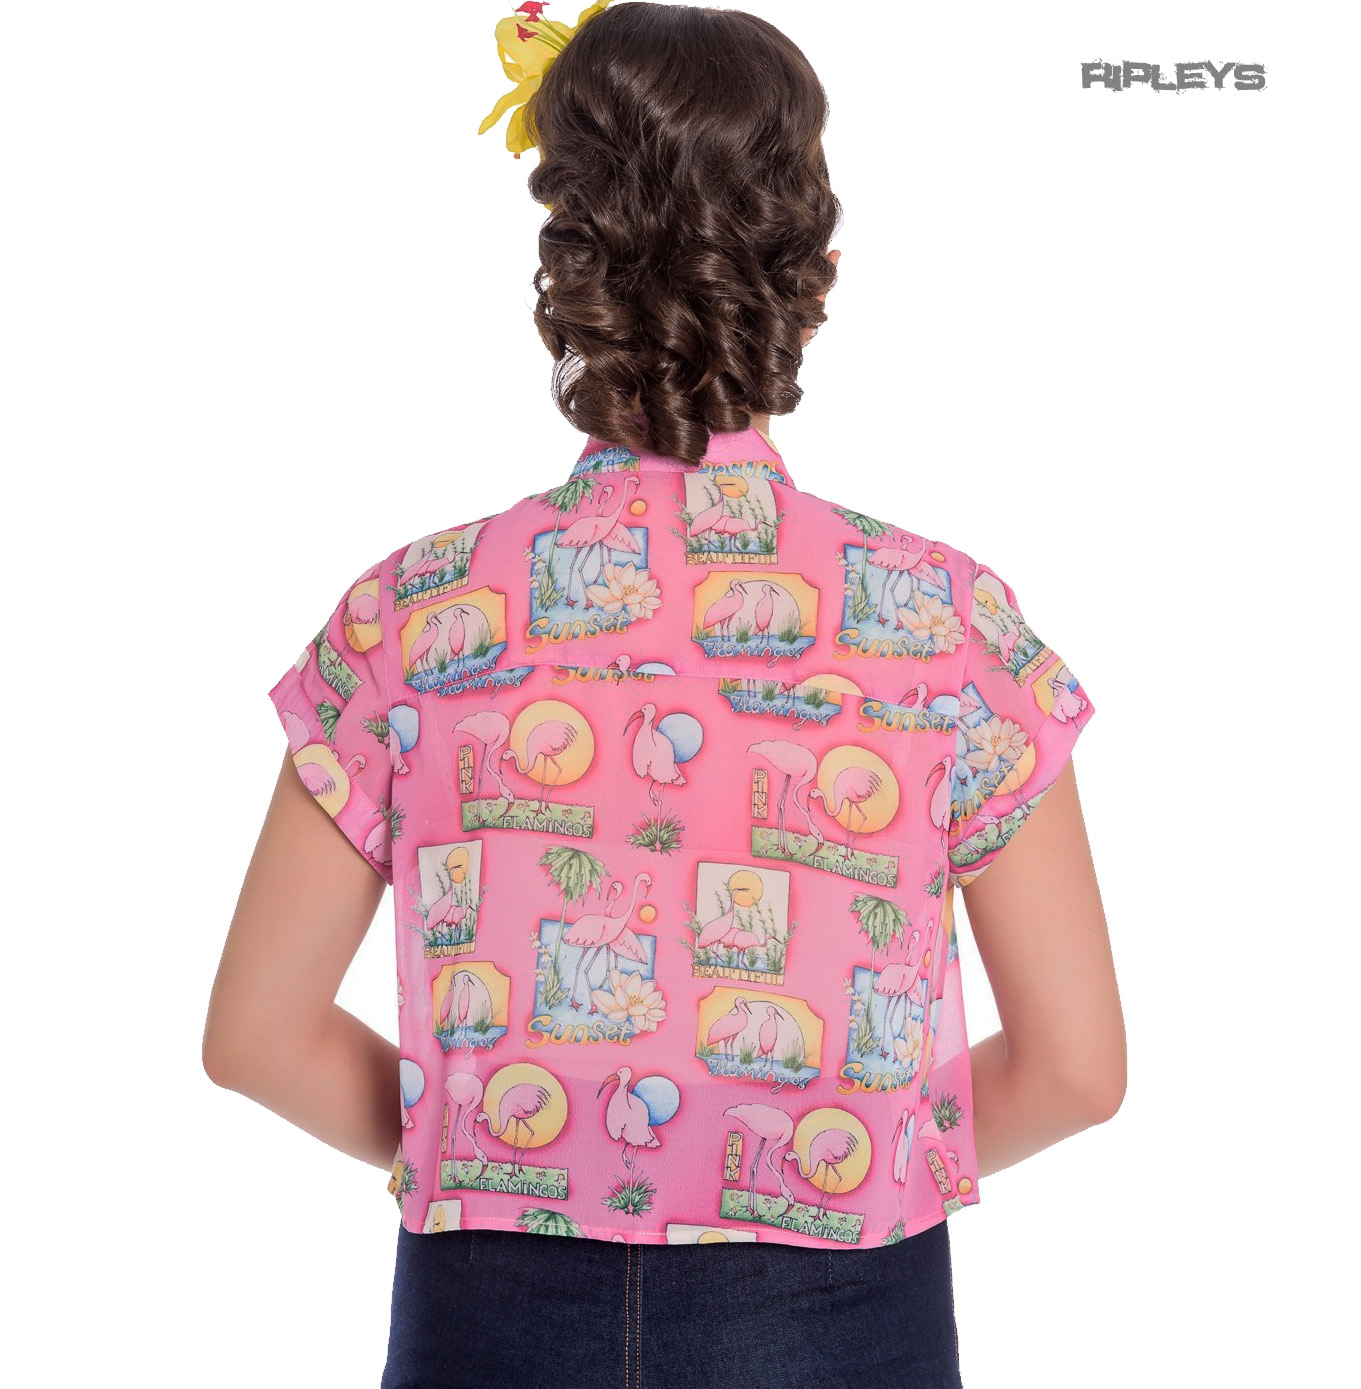 Hell-Bunny-50s-Retro-Top-Pink-Flamingo-MAXINE-Cropped-Blouse-Shirt-All-Sizes thumbnail 28